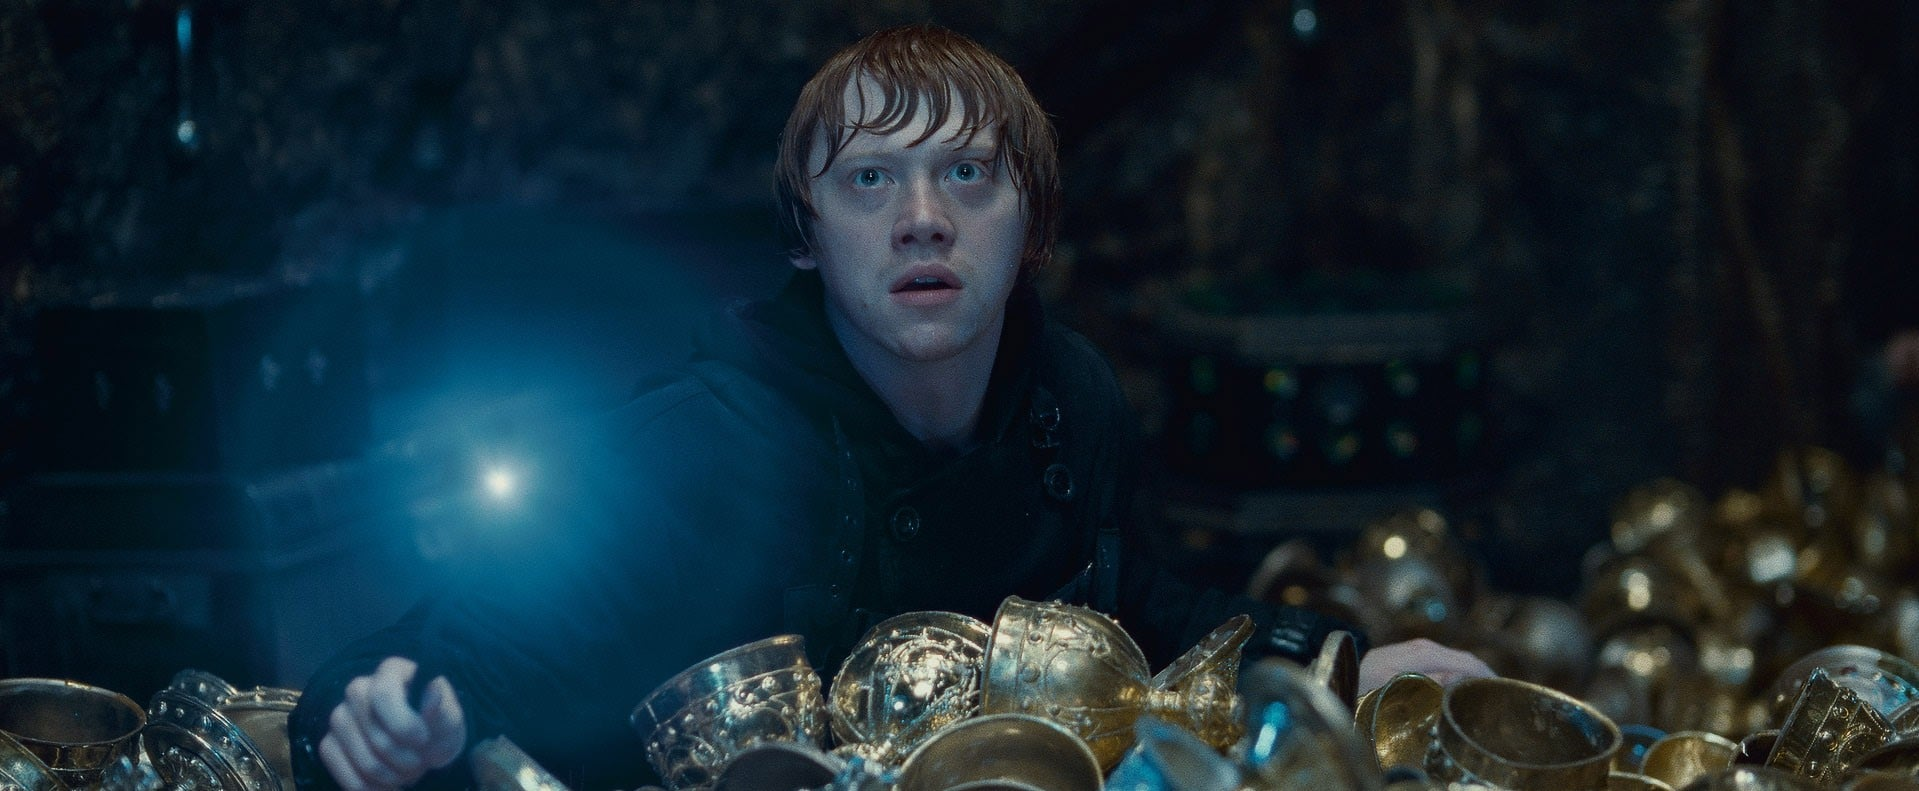 Harry Potter Theory That Ron Weasley Is a Death Eater